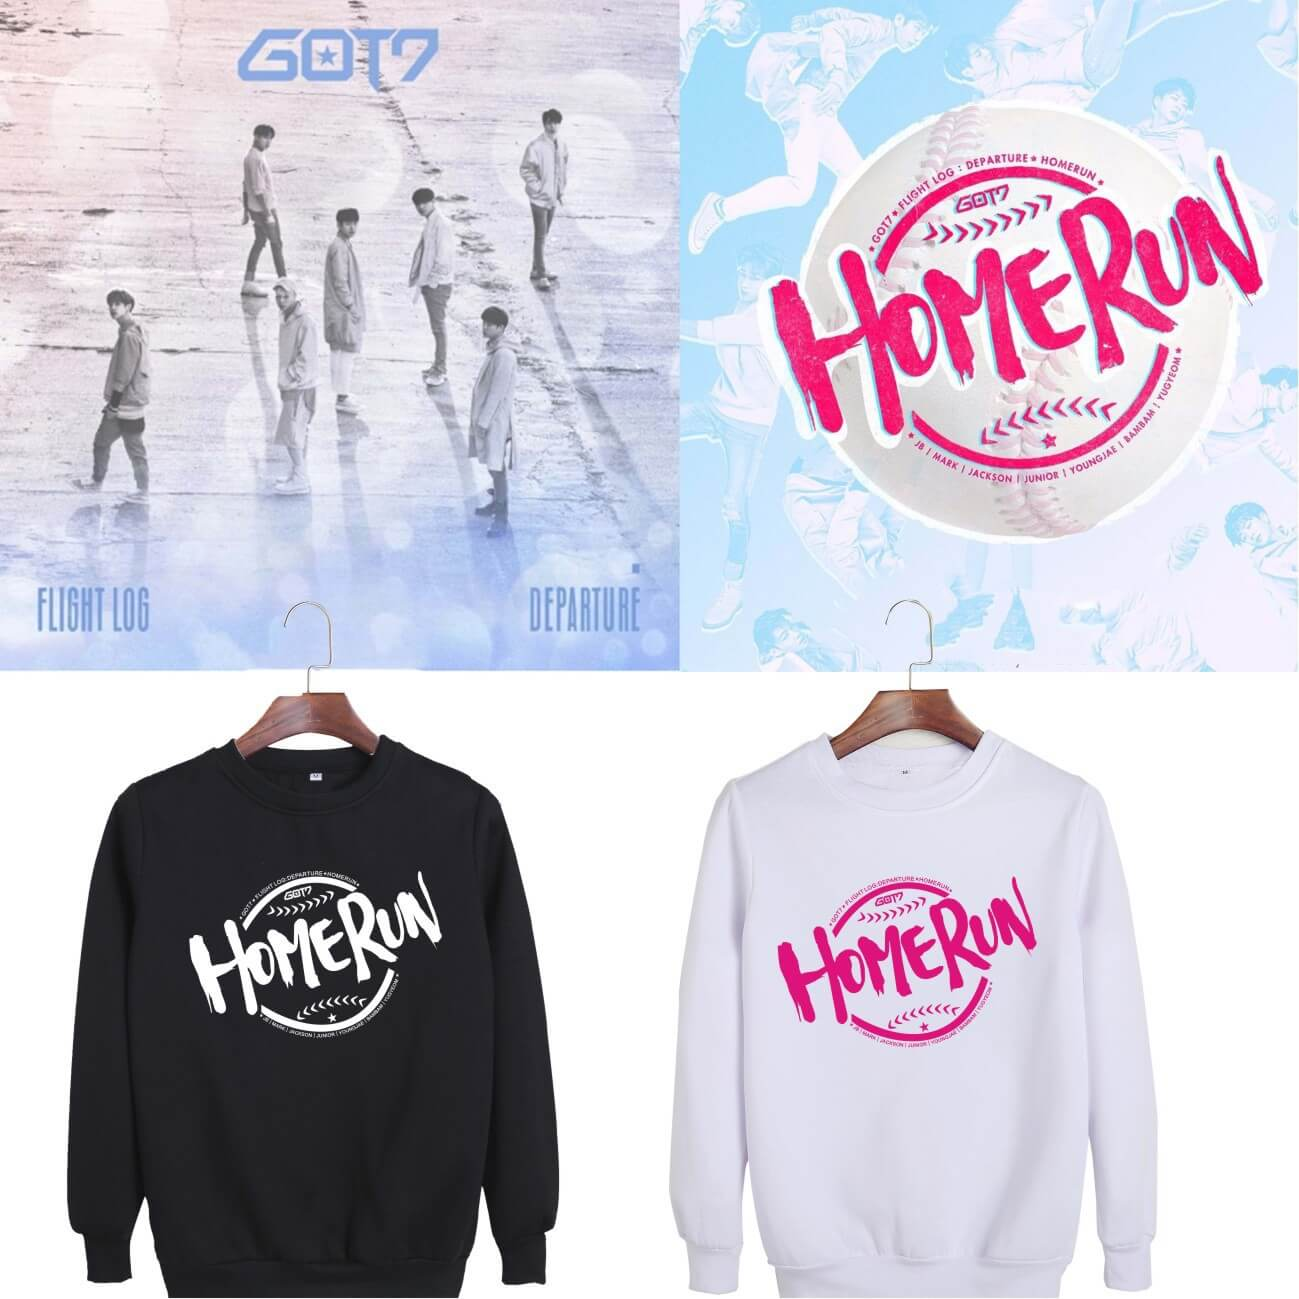 GOT7 FLIGHT LOG HOME RUN Sweatshirt